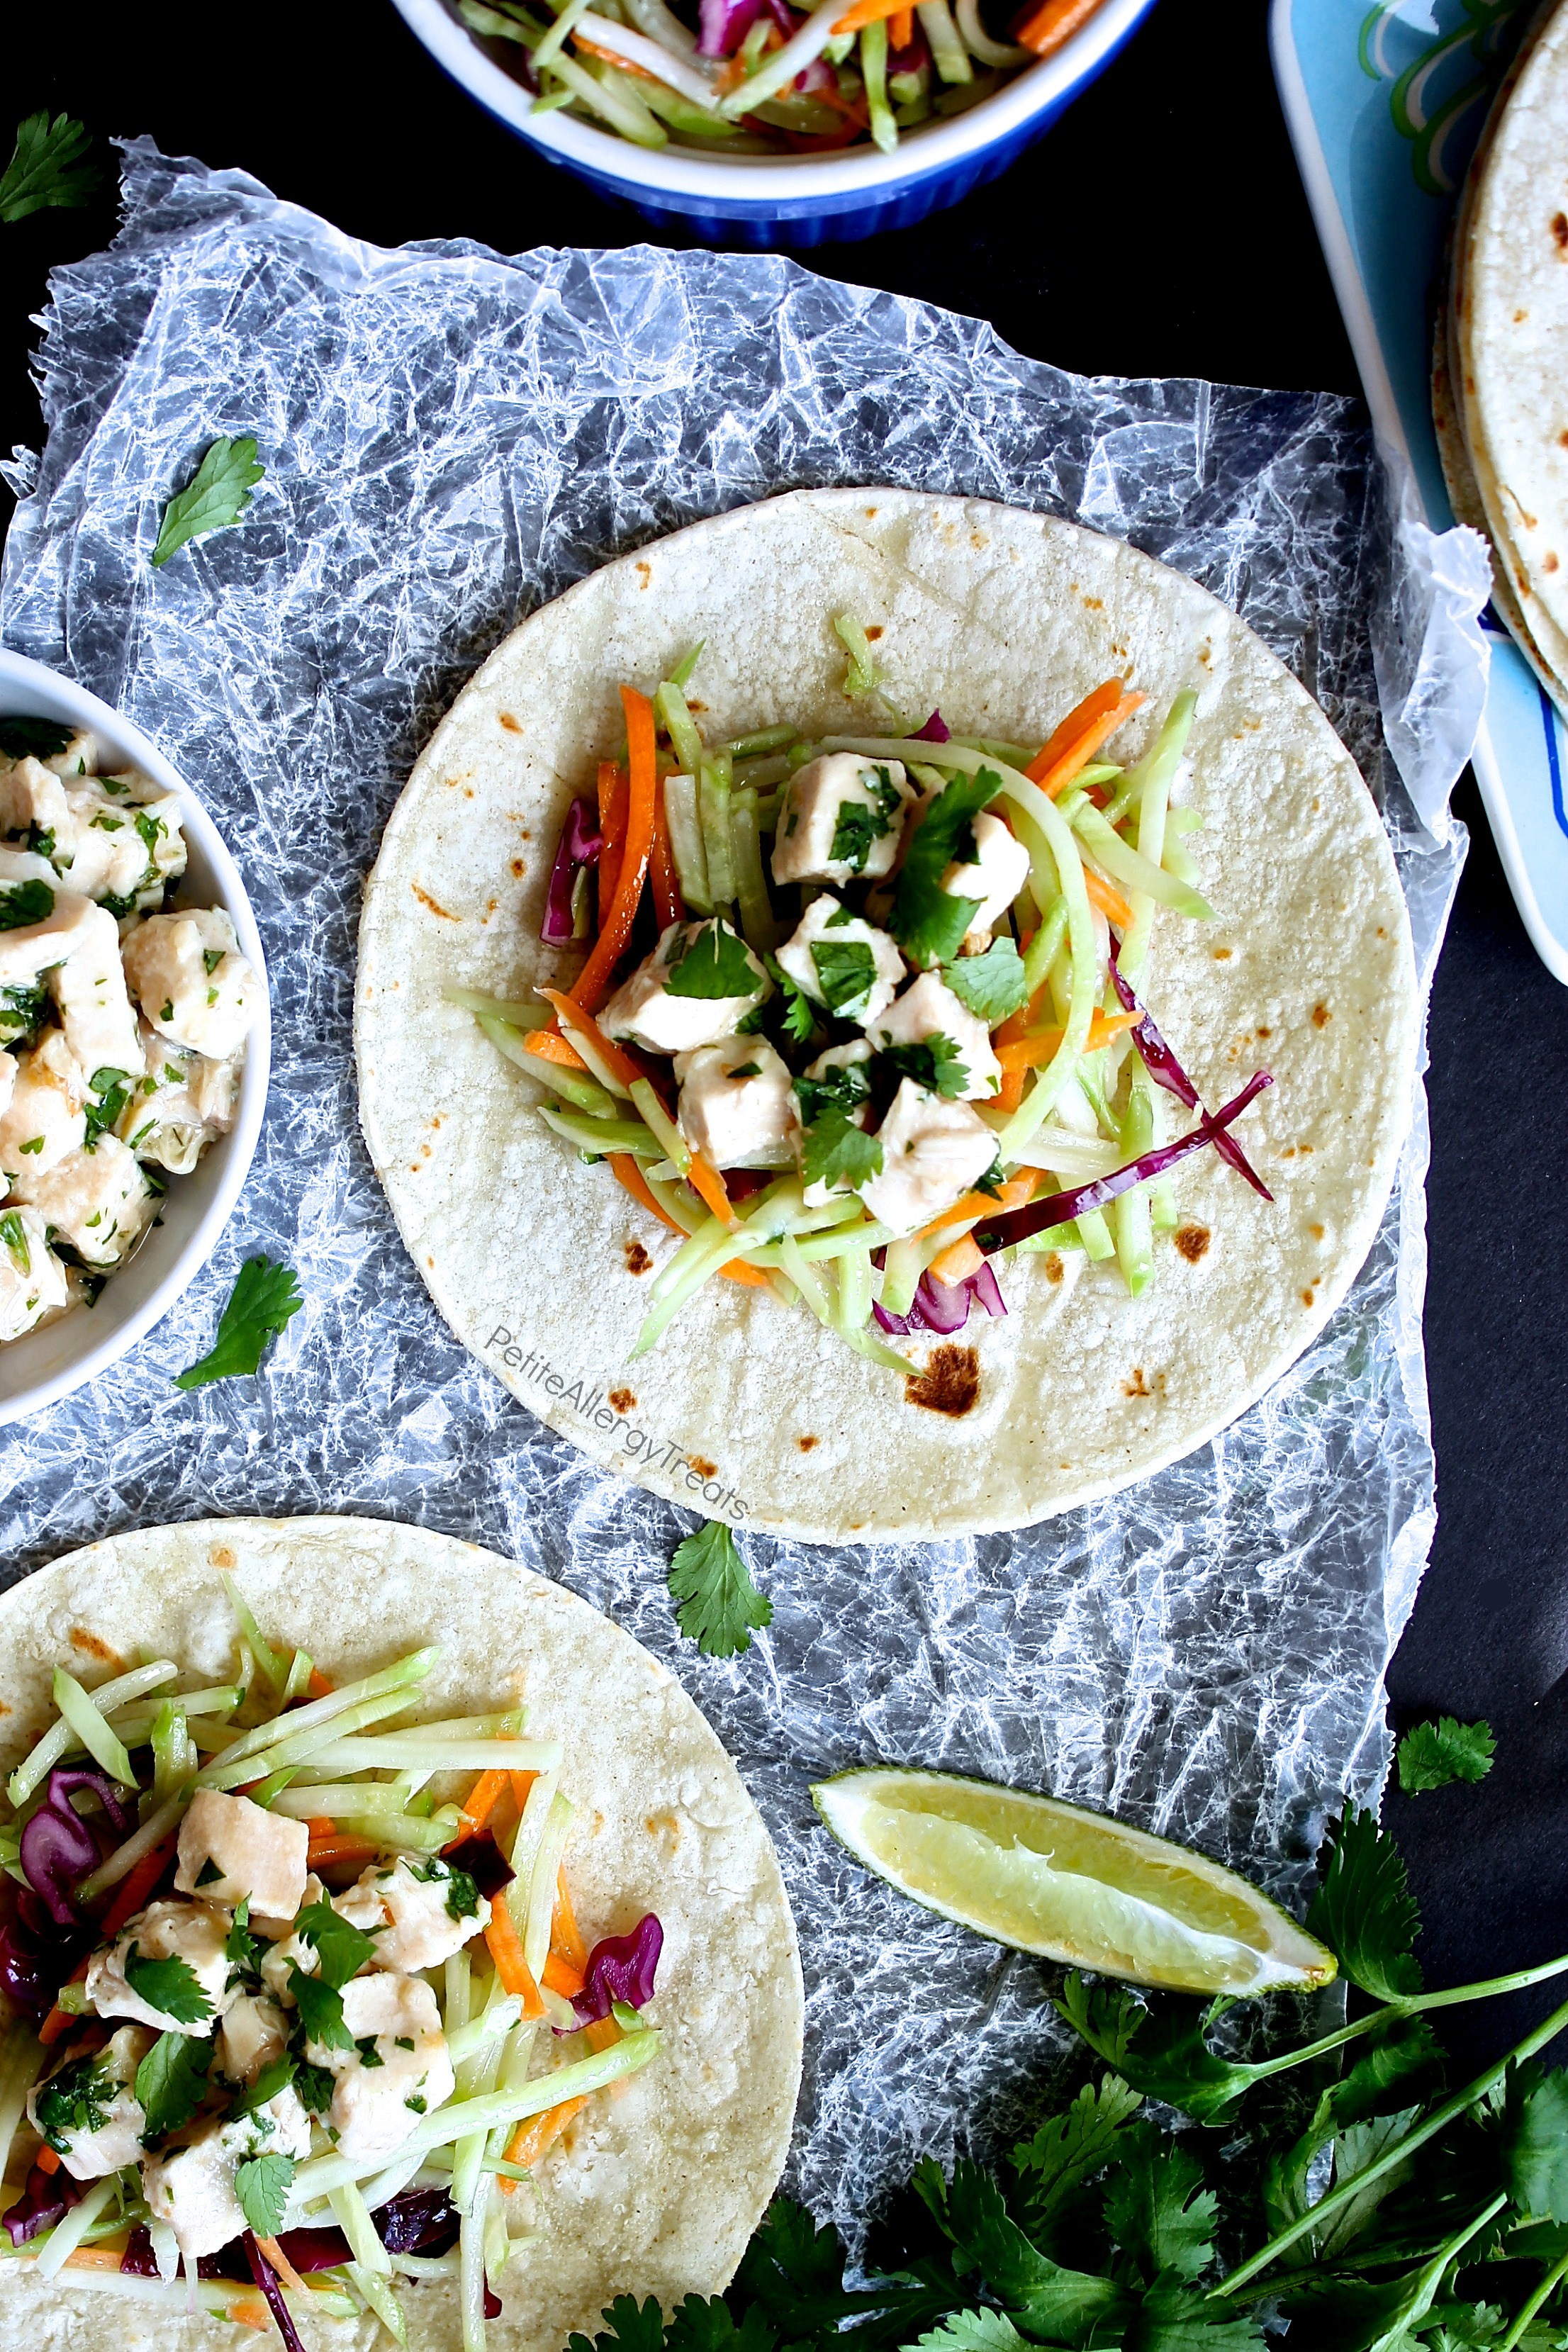 Cilantro Lime Chicken Tacos recipe (gluten free)- Super easy dinner made with rotisserie chicken and ready in under 30 minutes!